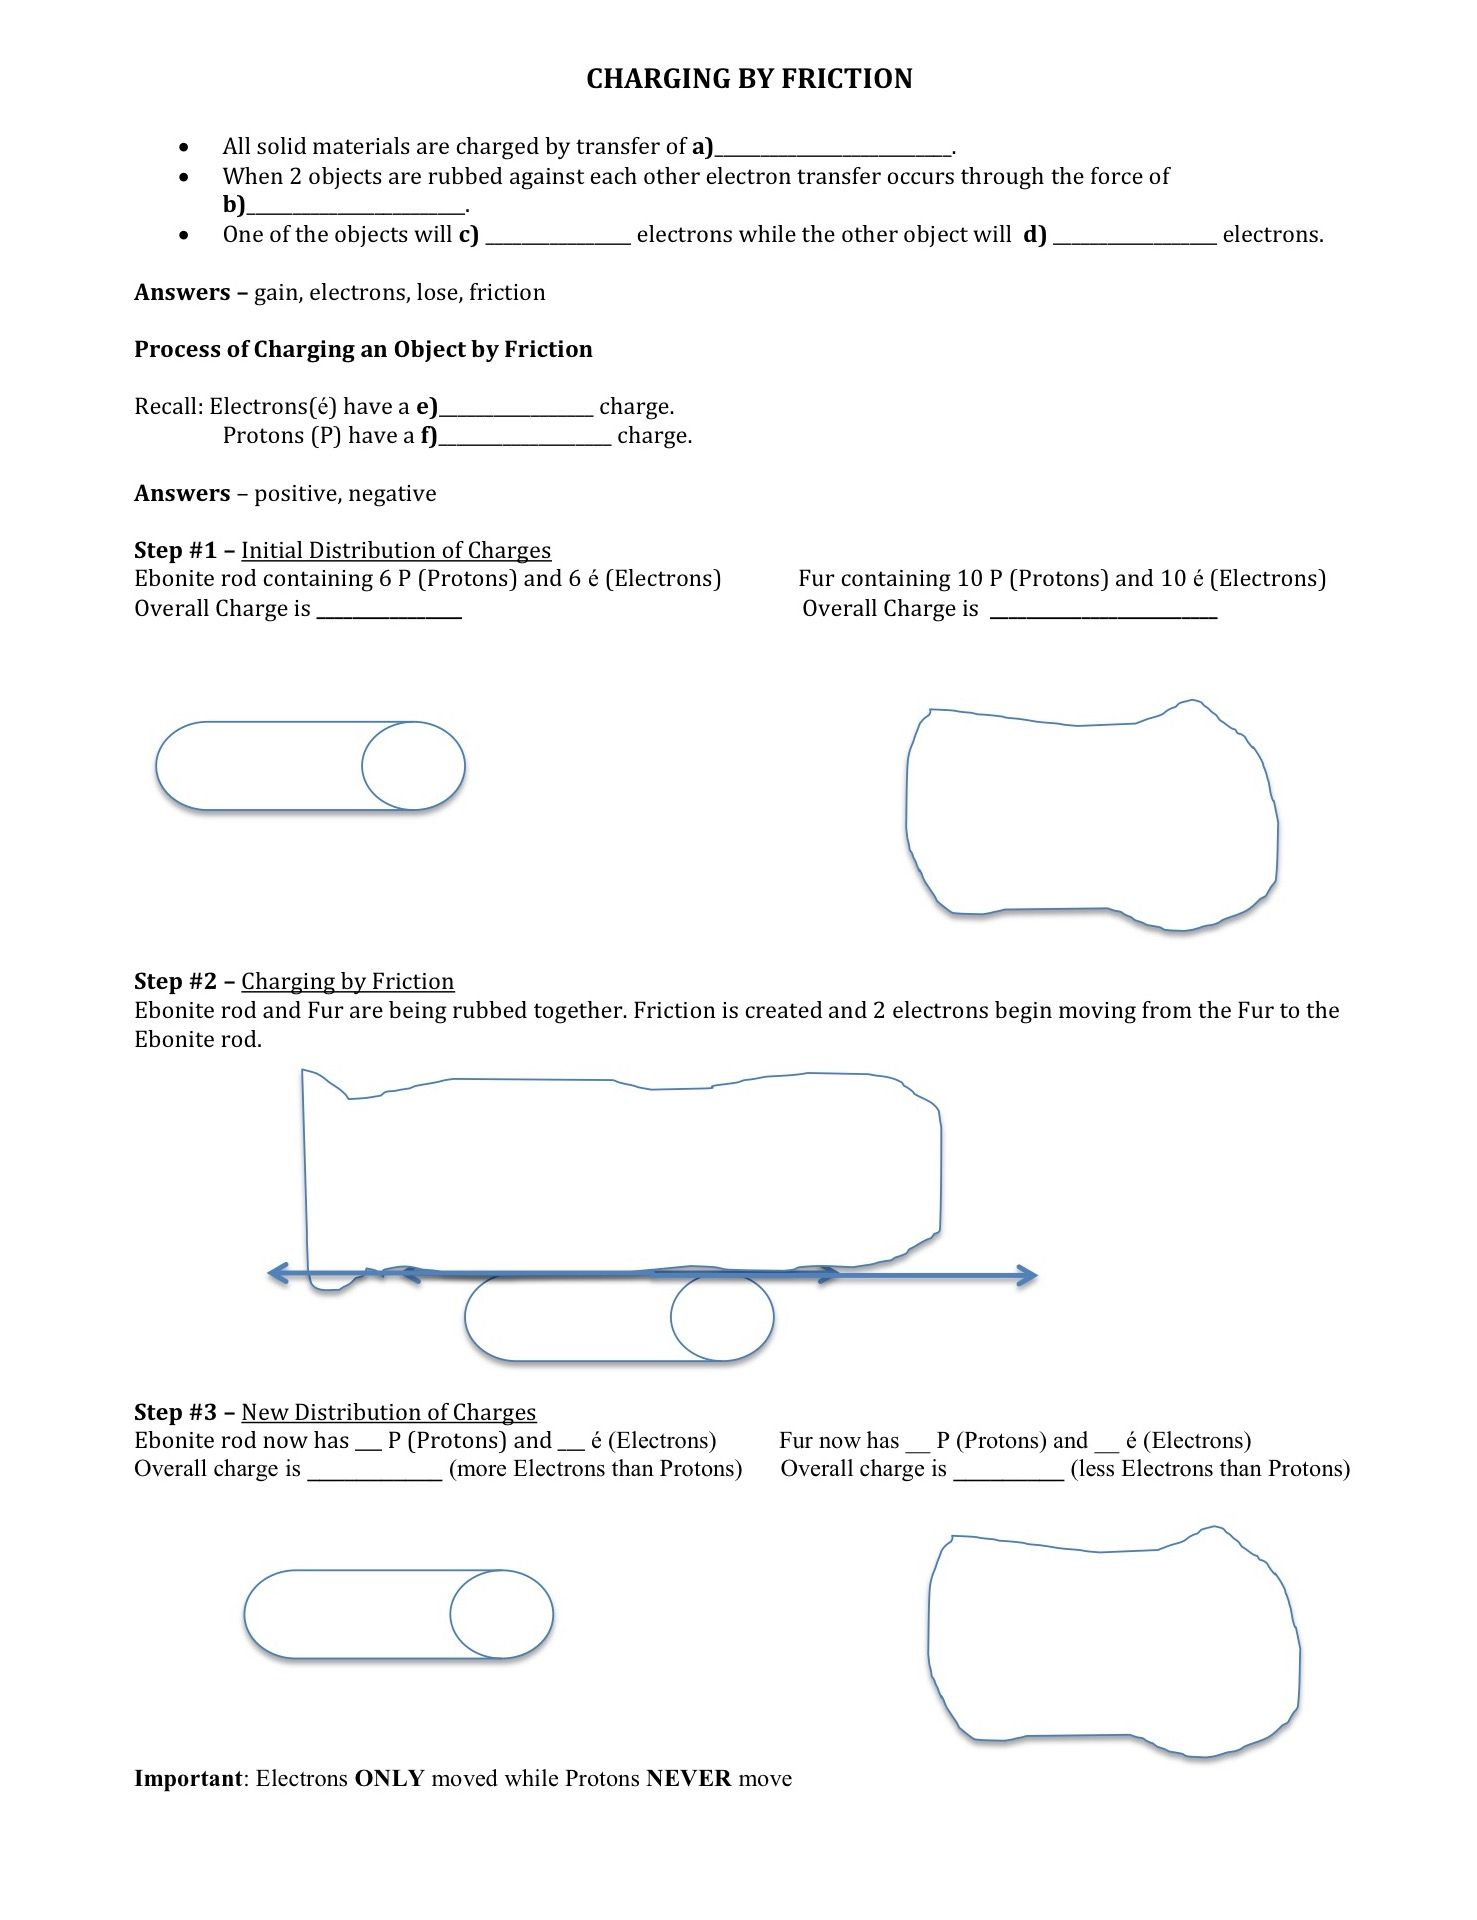 Charging By Friction Worksheet Thursday February 21 2019 Worksheets Learning Numbers Answers [ 1920 x 1477 Pixel ]